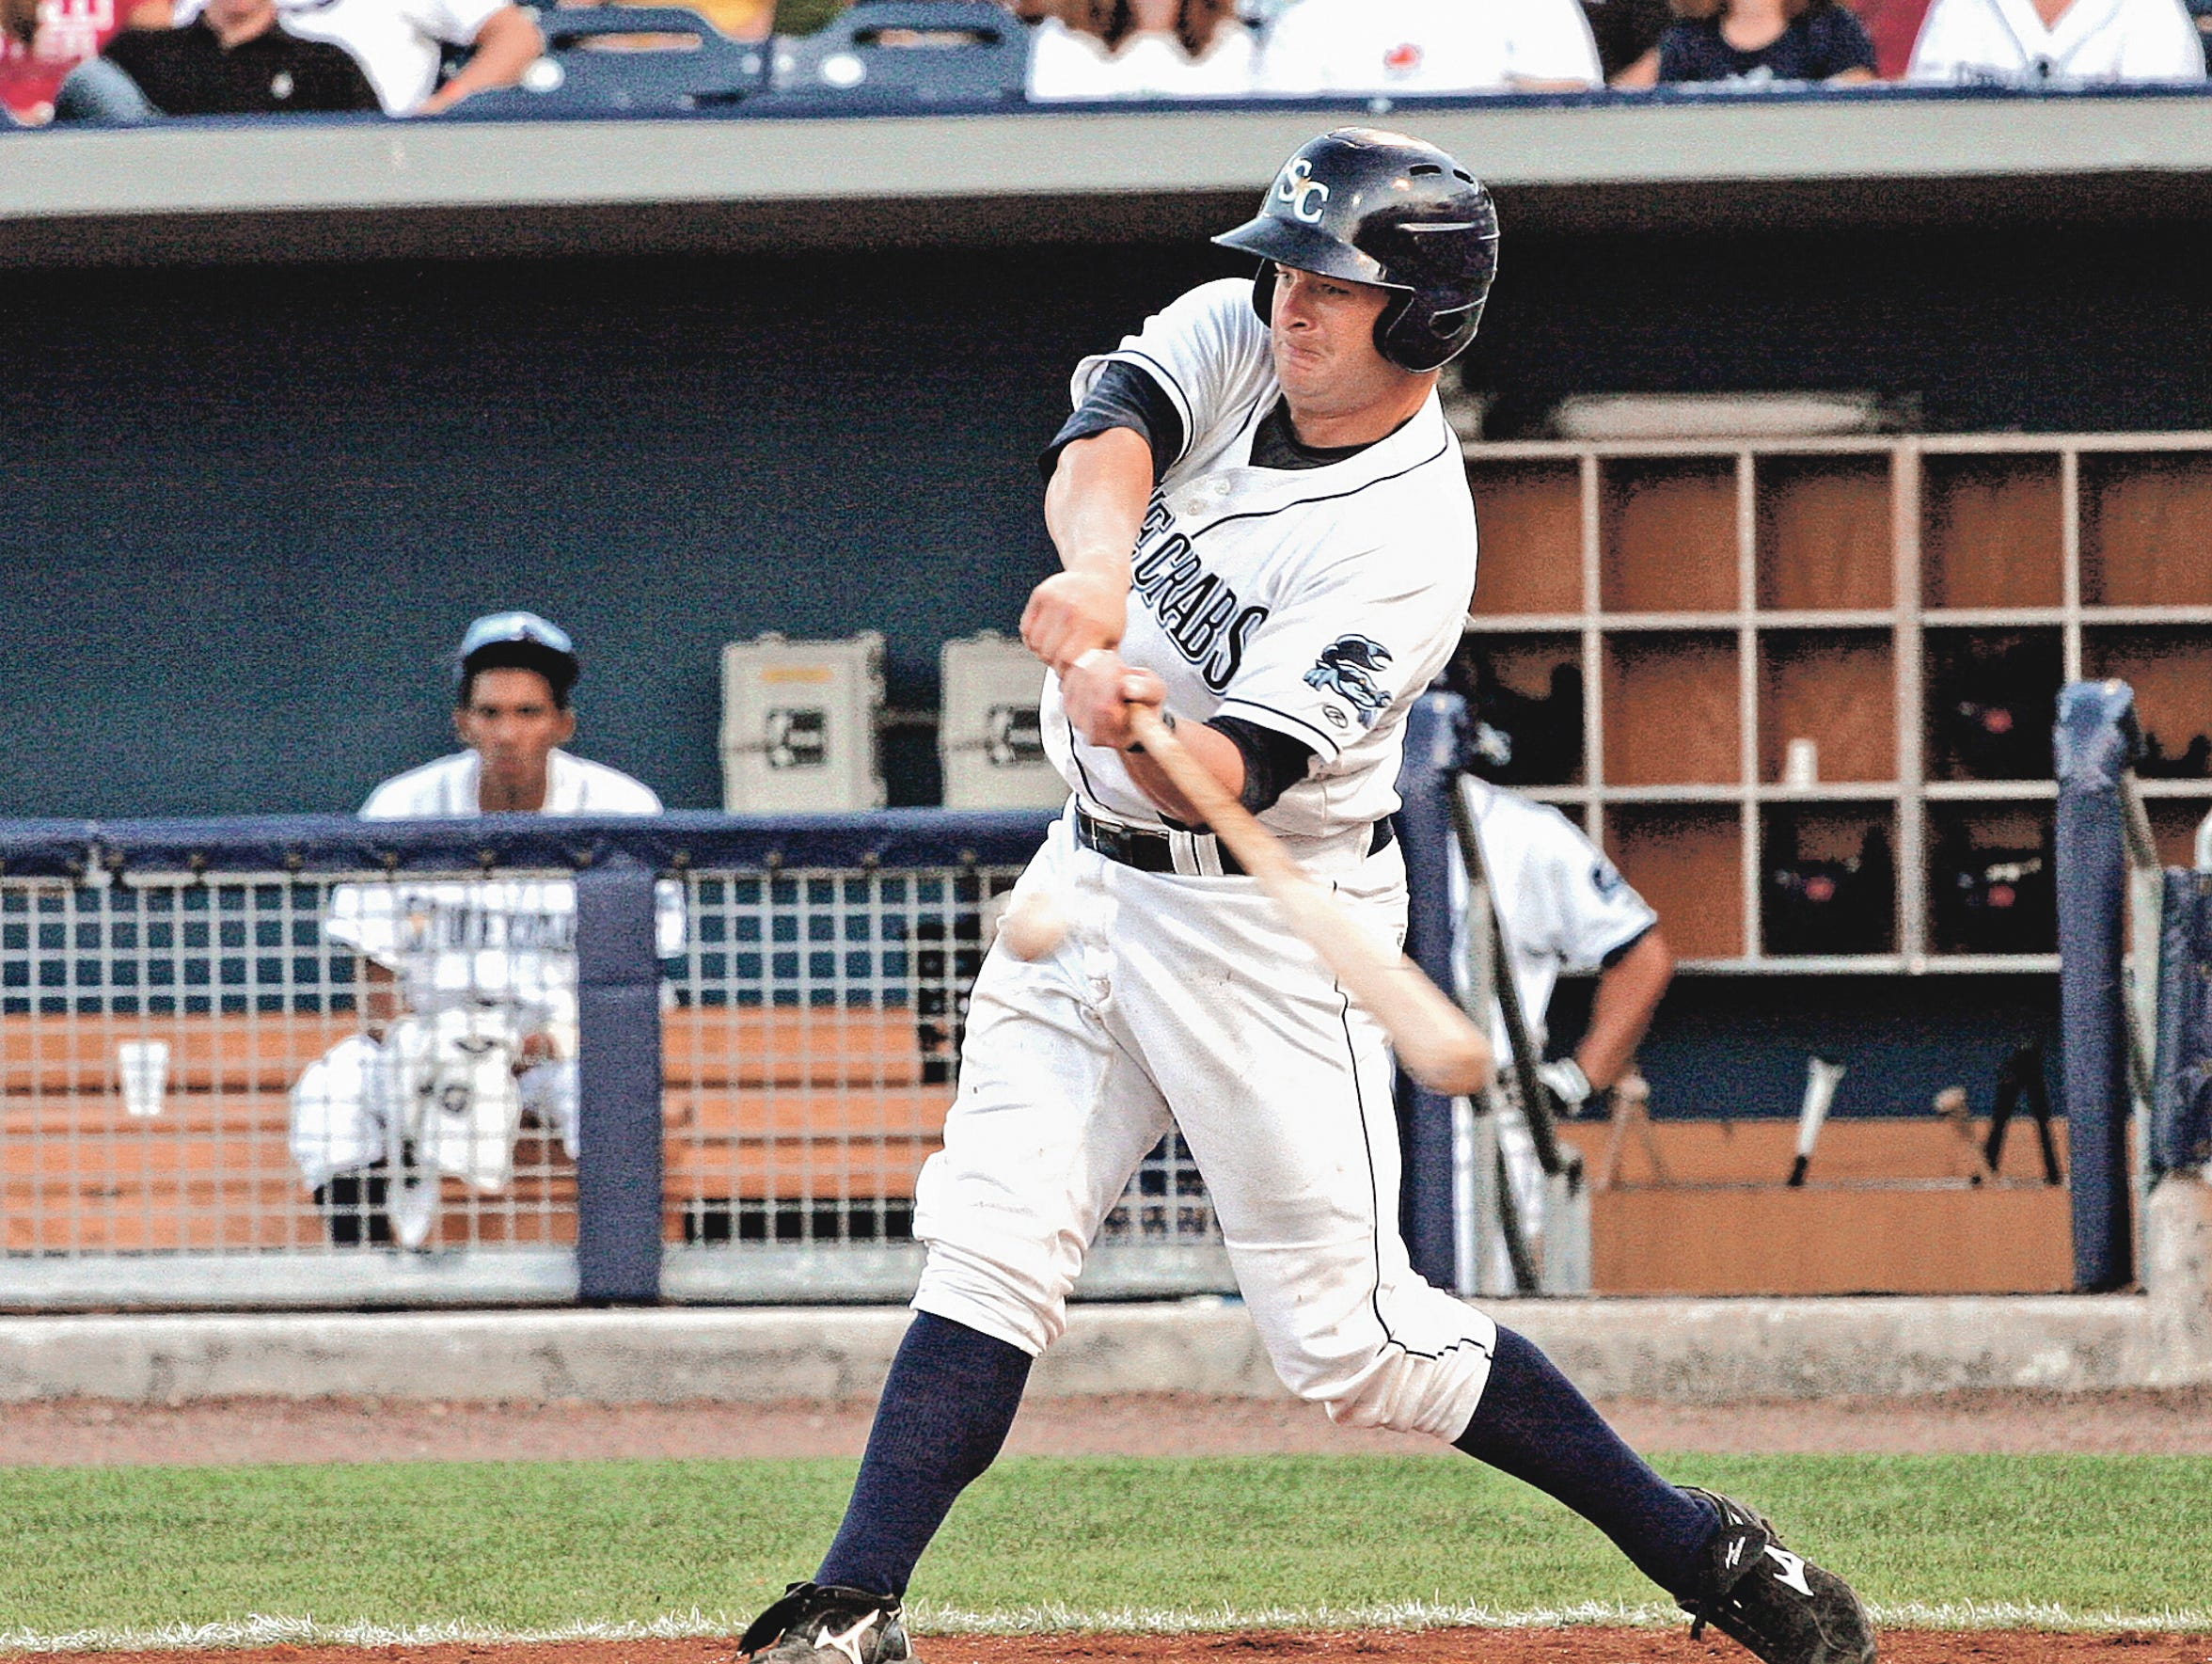 Stephen Vogt during his time in the minor leagues.